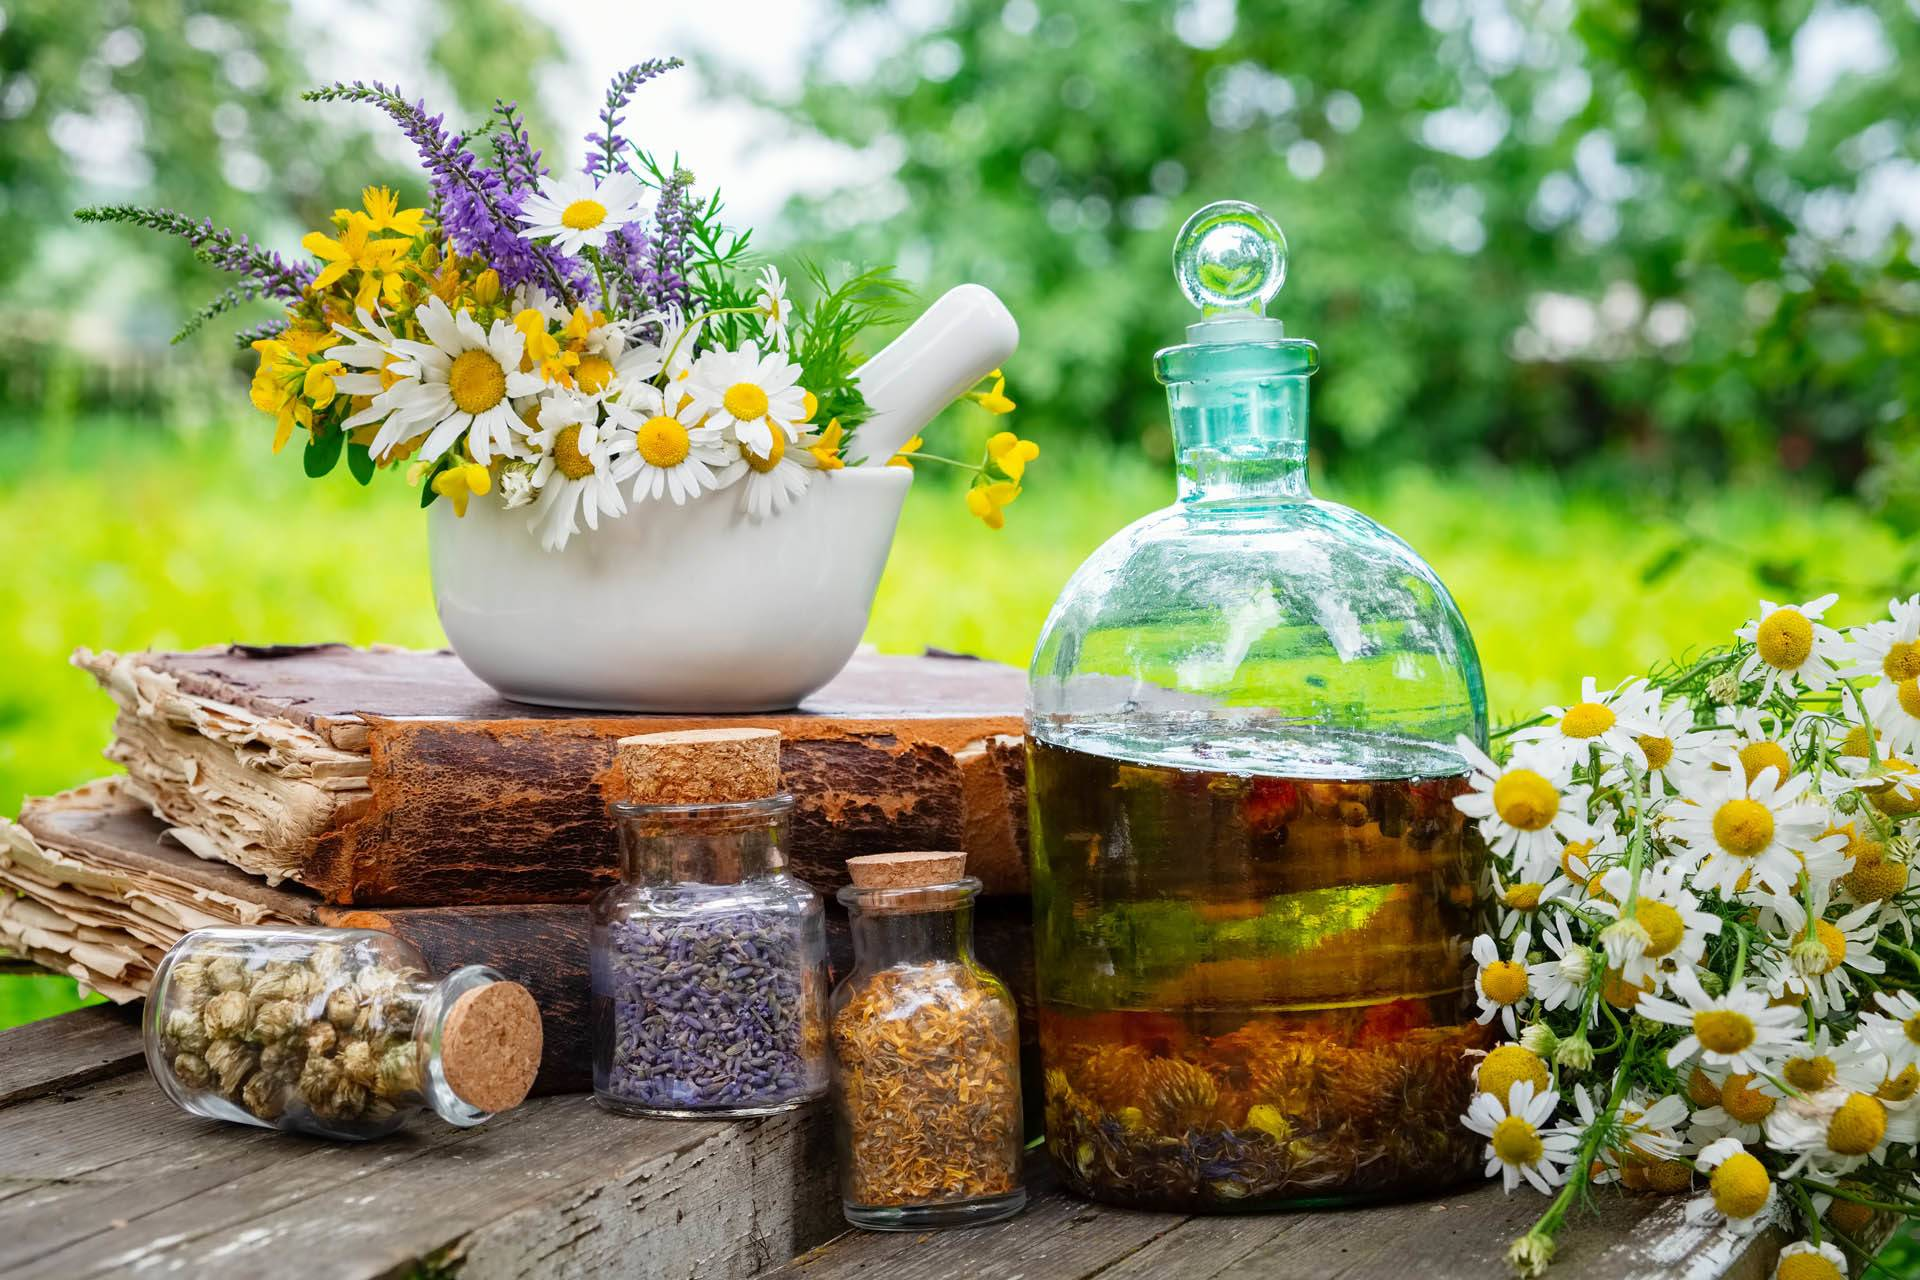 Mortar of healing herbs, bottles of healthy essential oil or inf